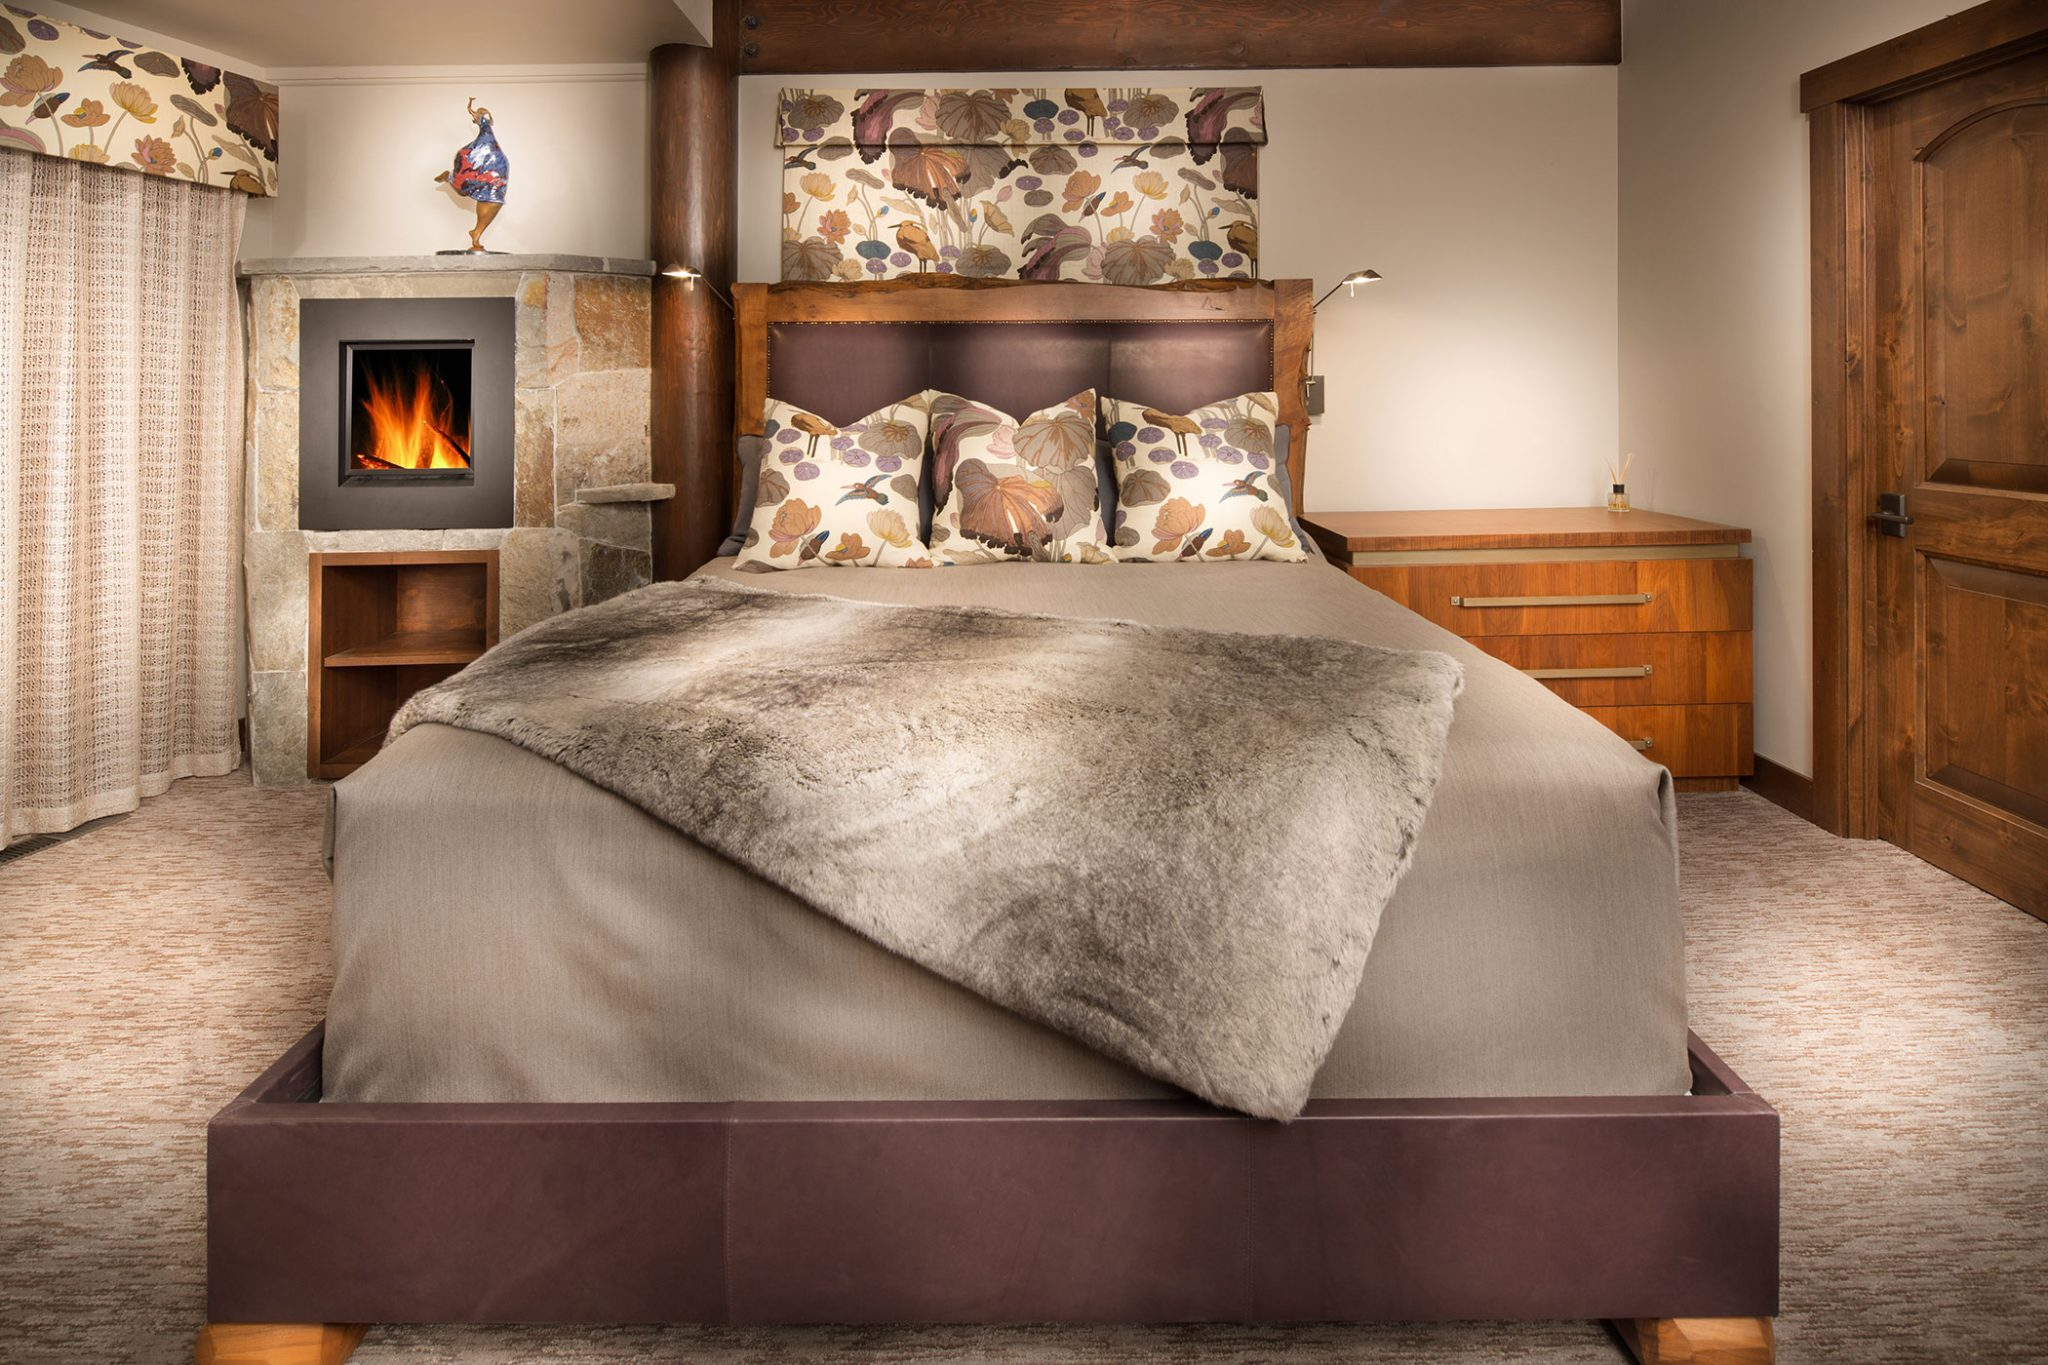 Eclectic Lift, flowery brown bed pillows and window accent and brown fur throw by Aspen Leaf Interiors, Inc.